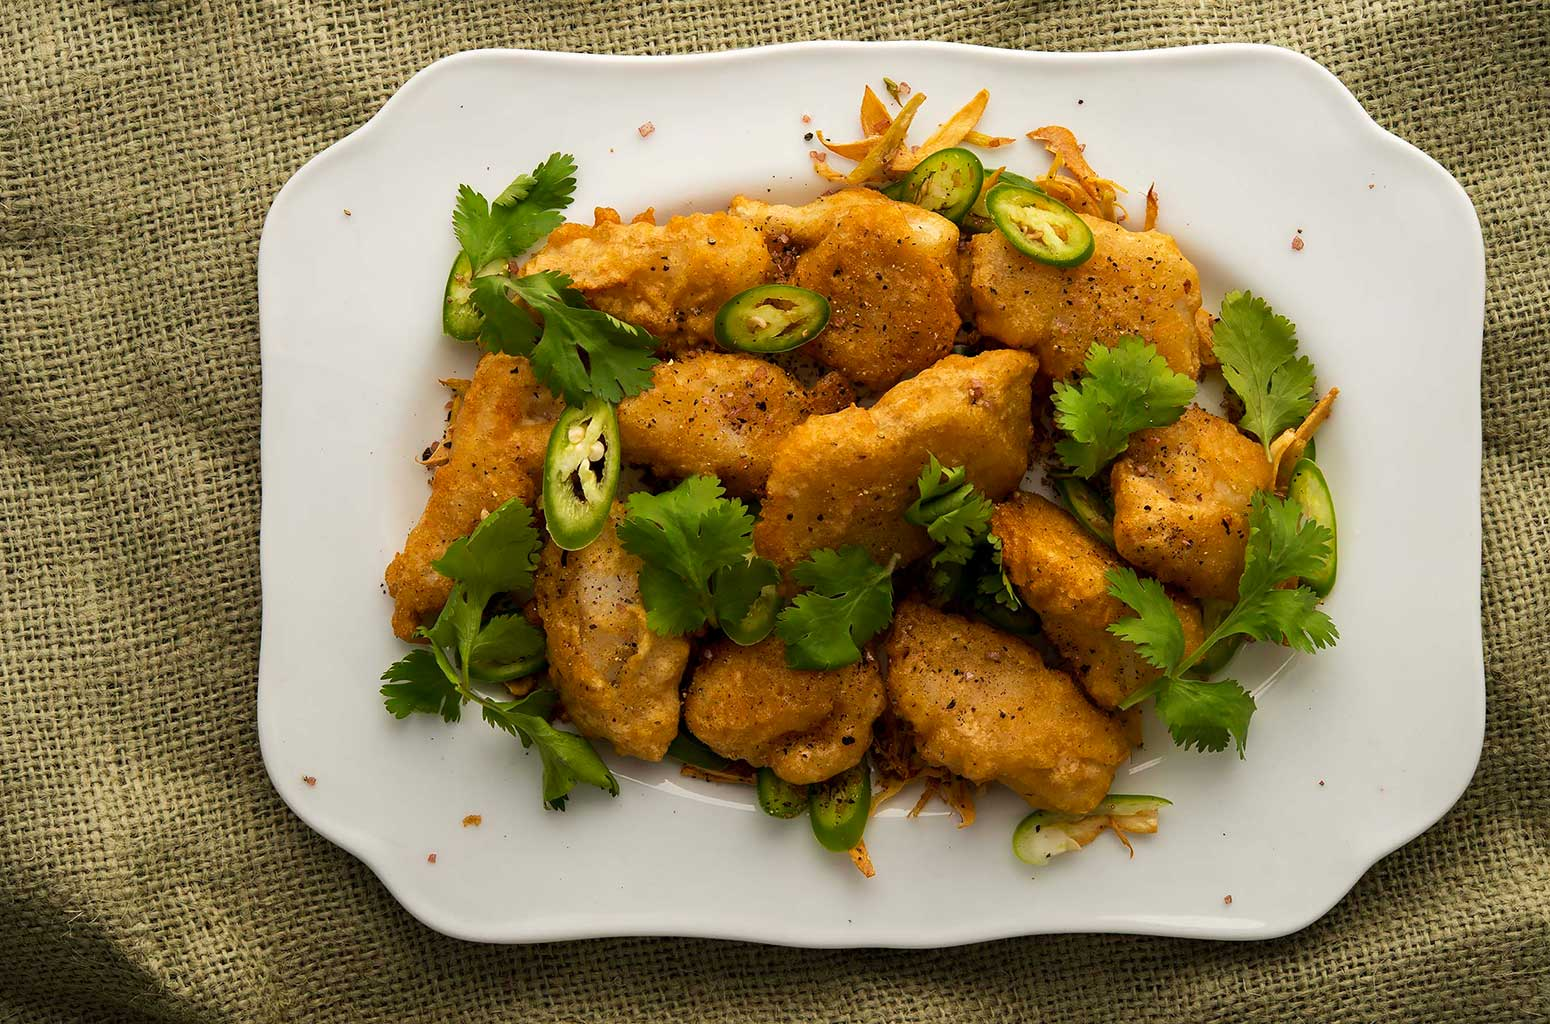 Chinese salt and pepper fish